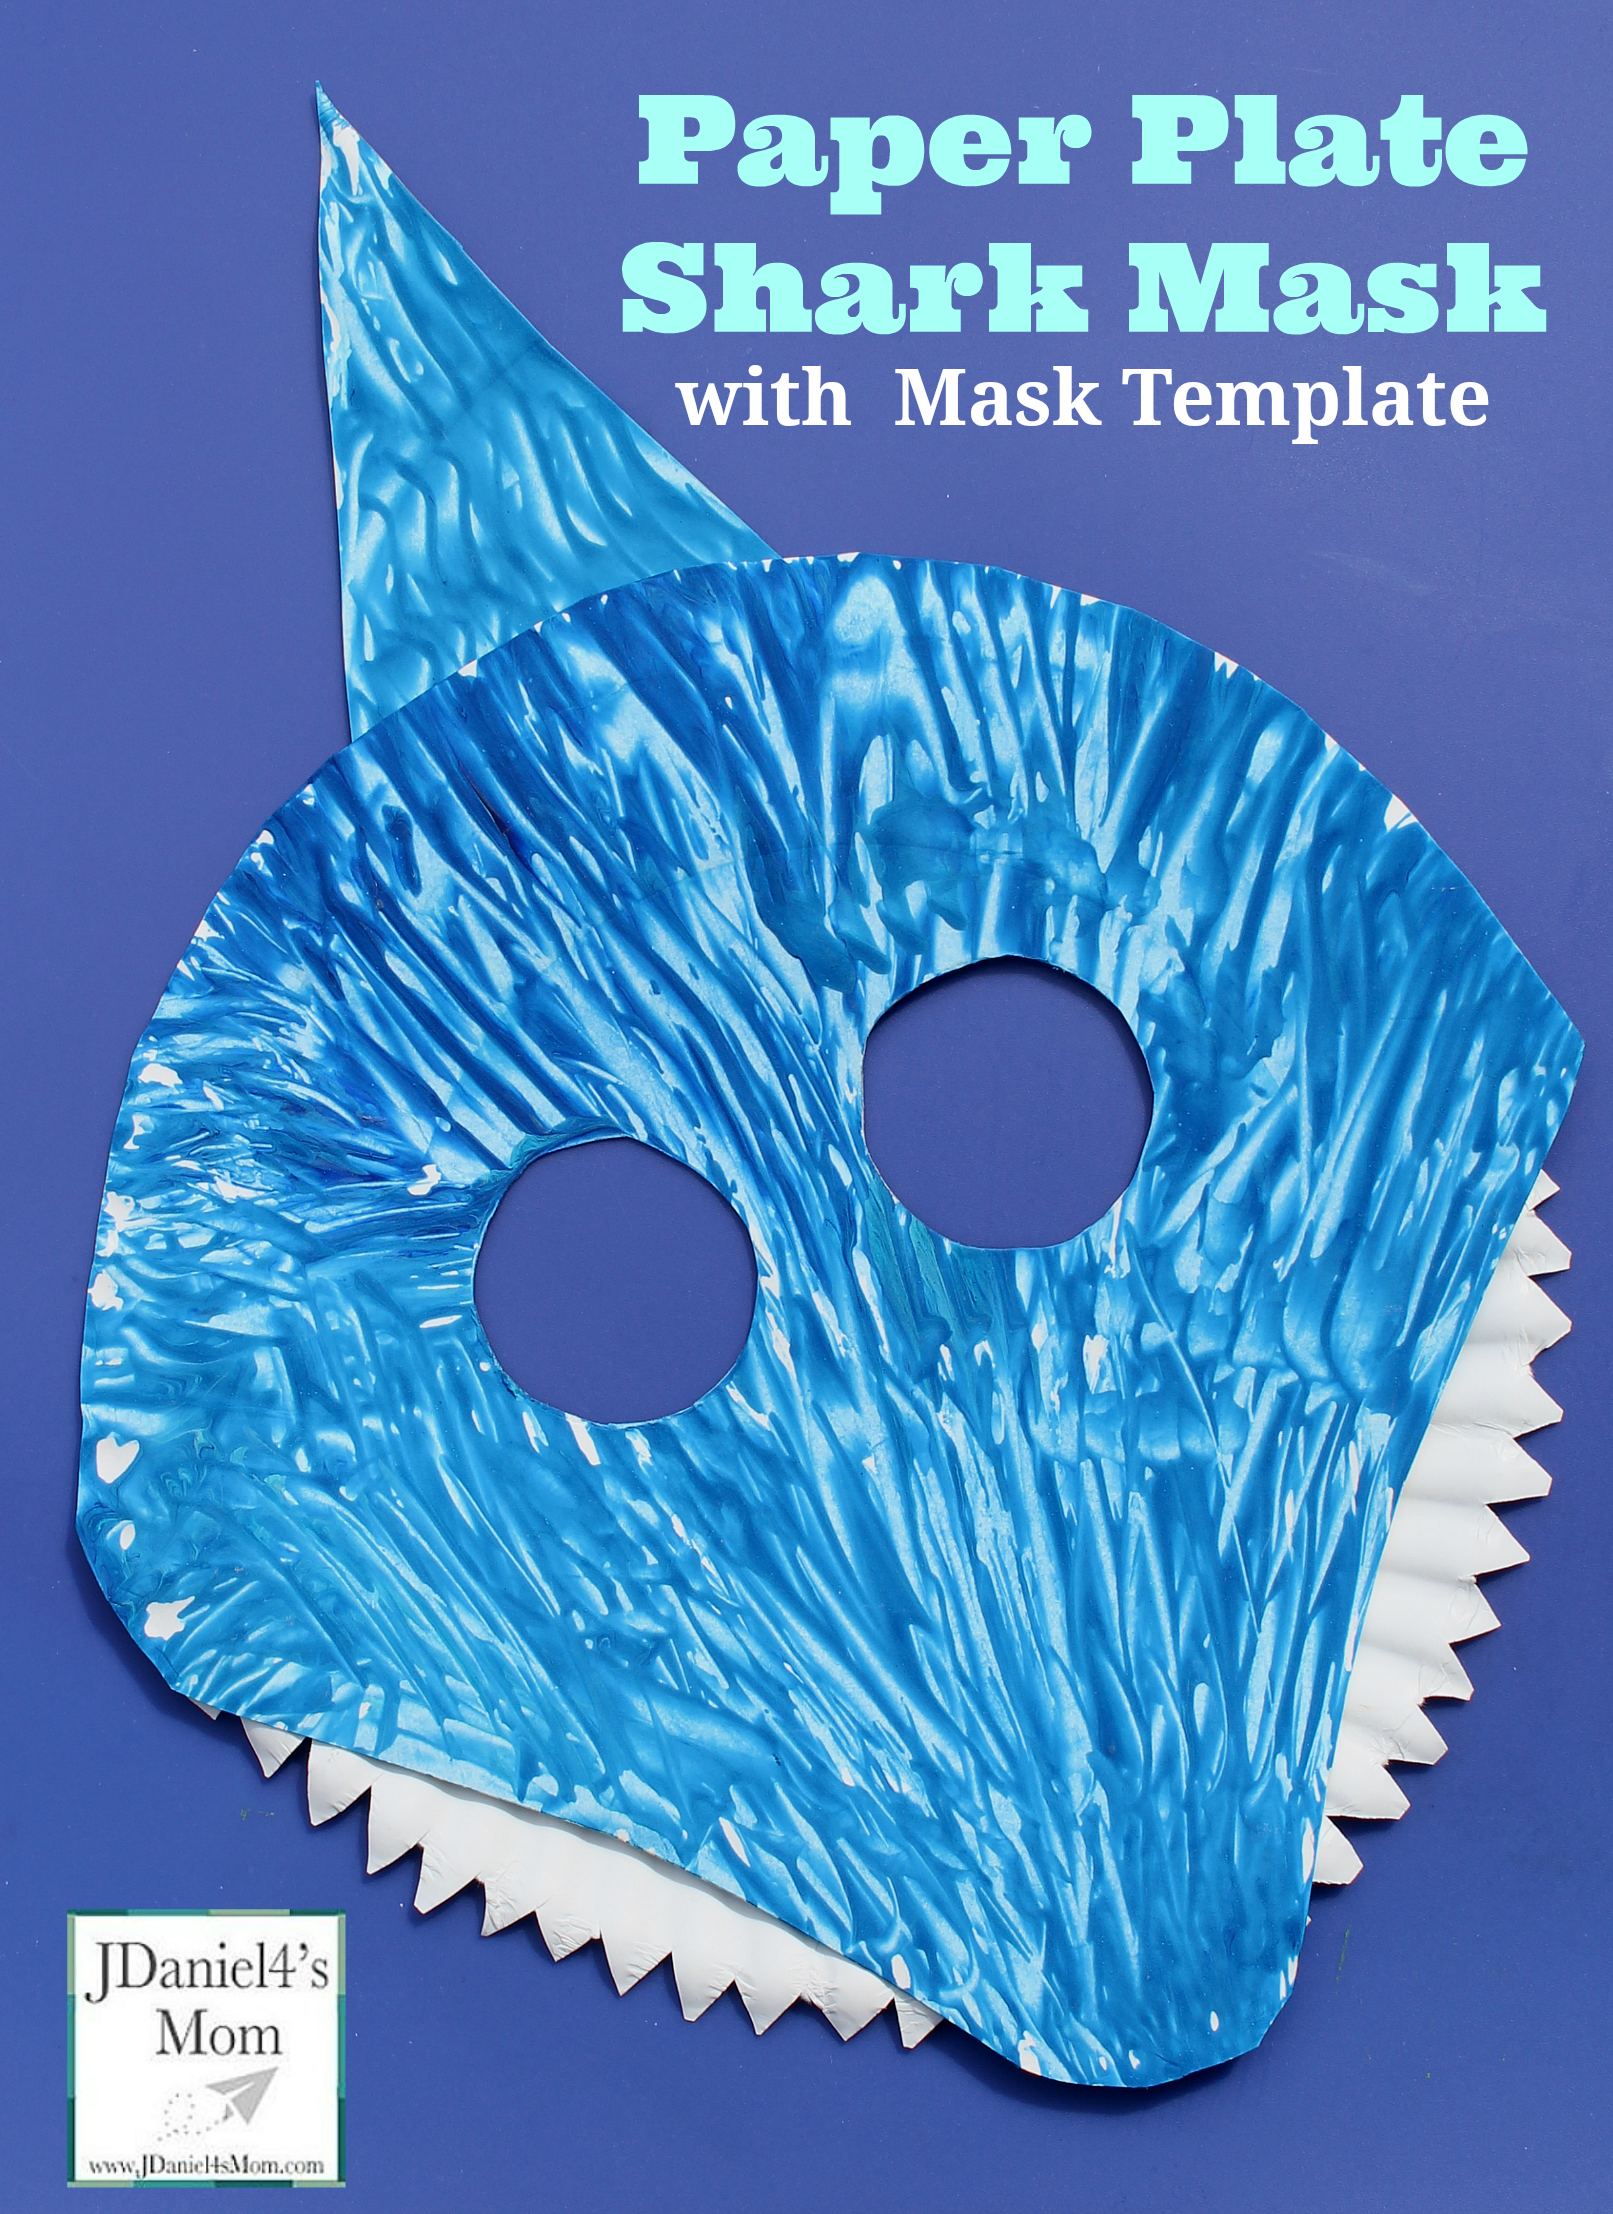 Paper Plate Shark Mask and Mask Template | JDaniel4\'s Mom (From My ...